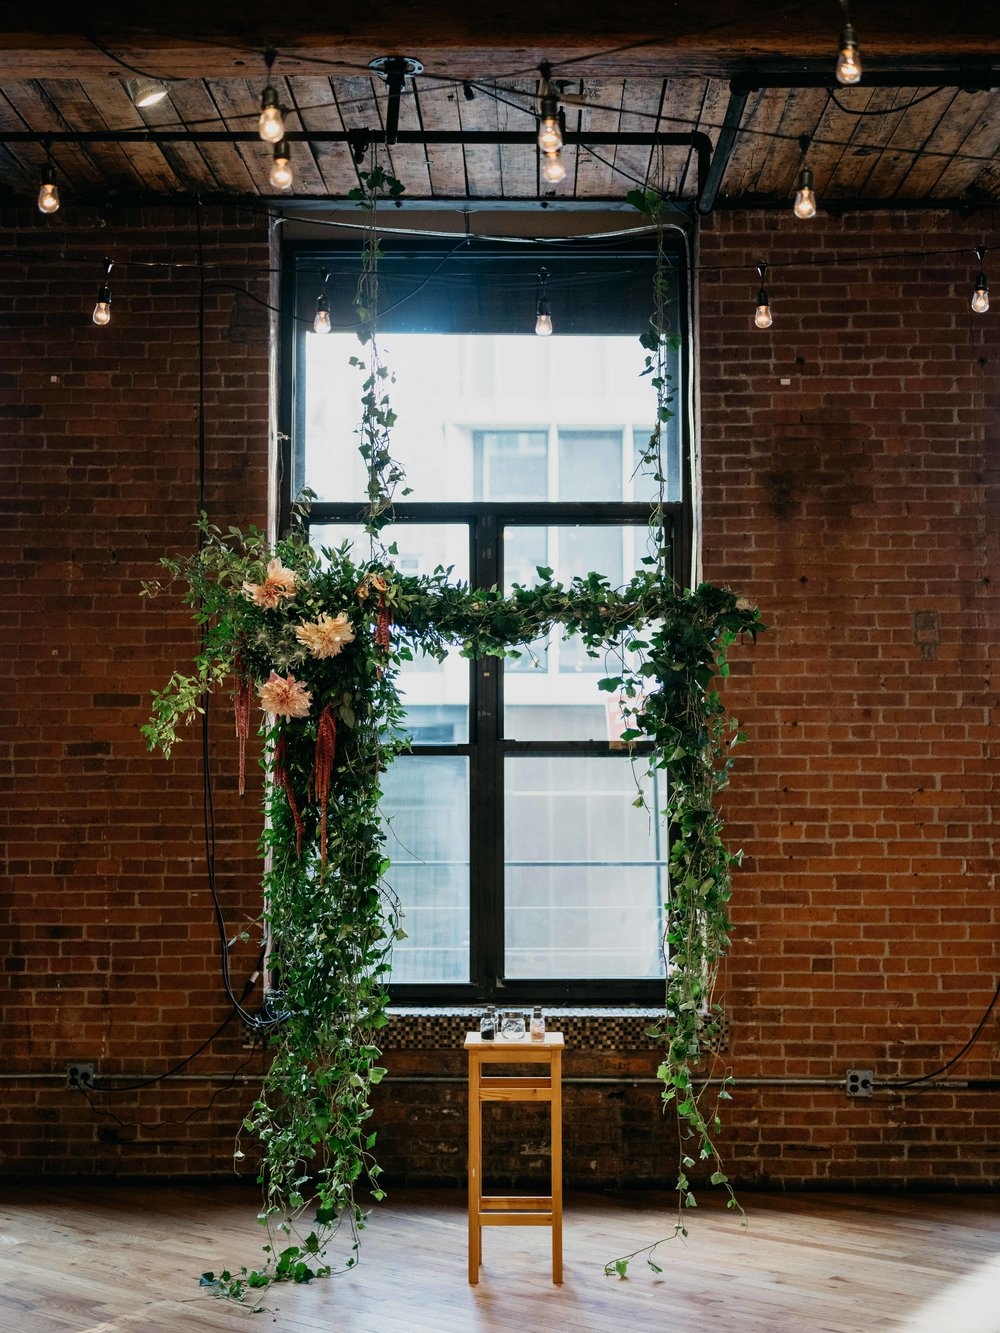 WSPCo-09102017-Alex-Kiley-Dumbo-Loft-Brooklyn-NY-Wedding-Preview-78.jpg